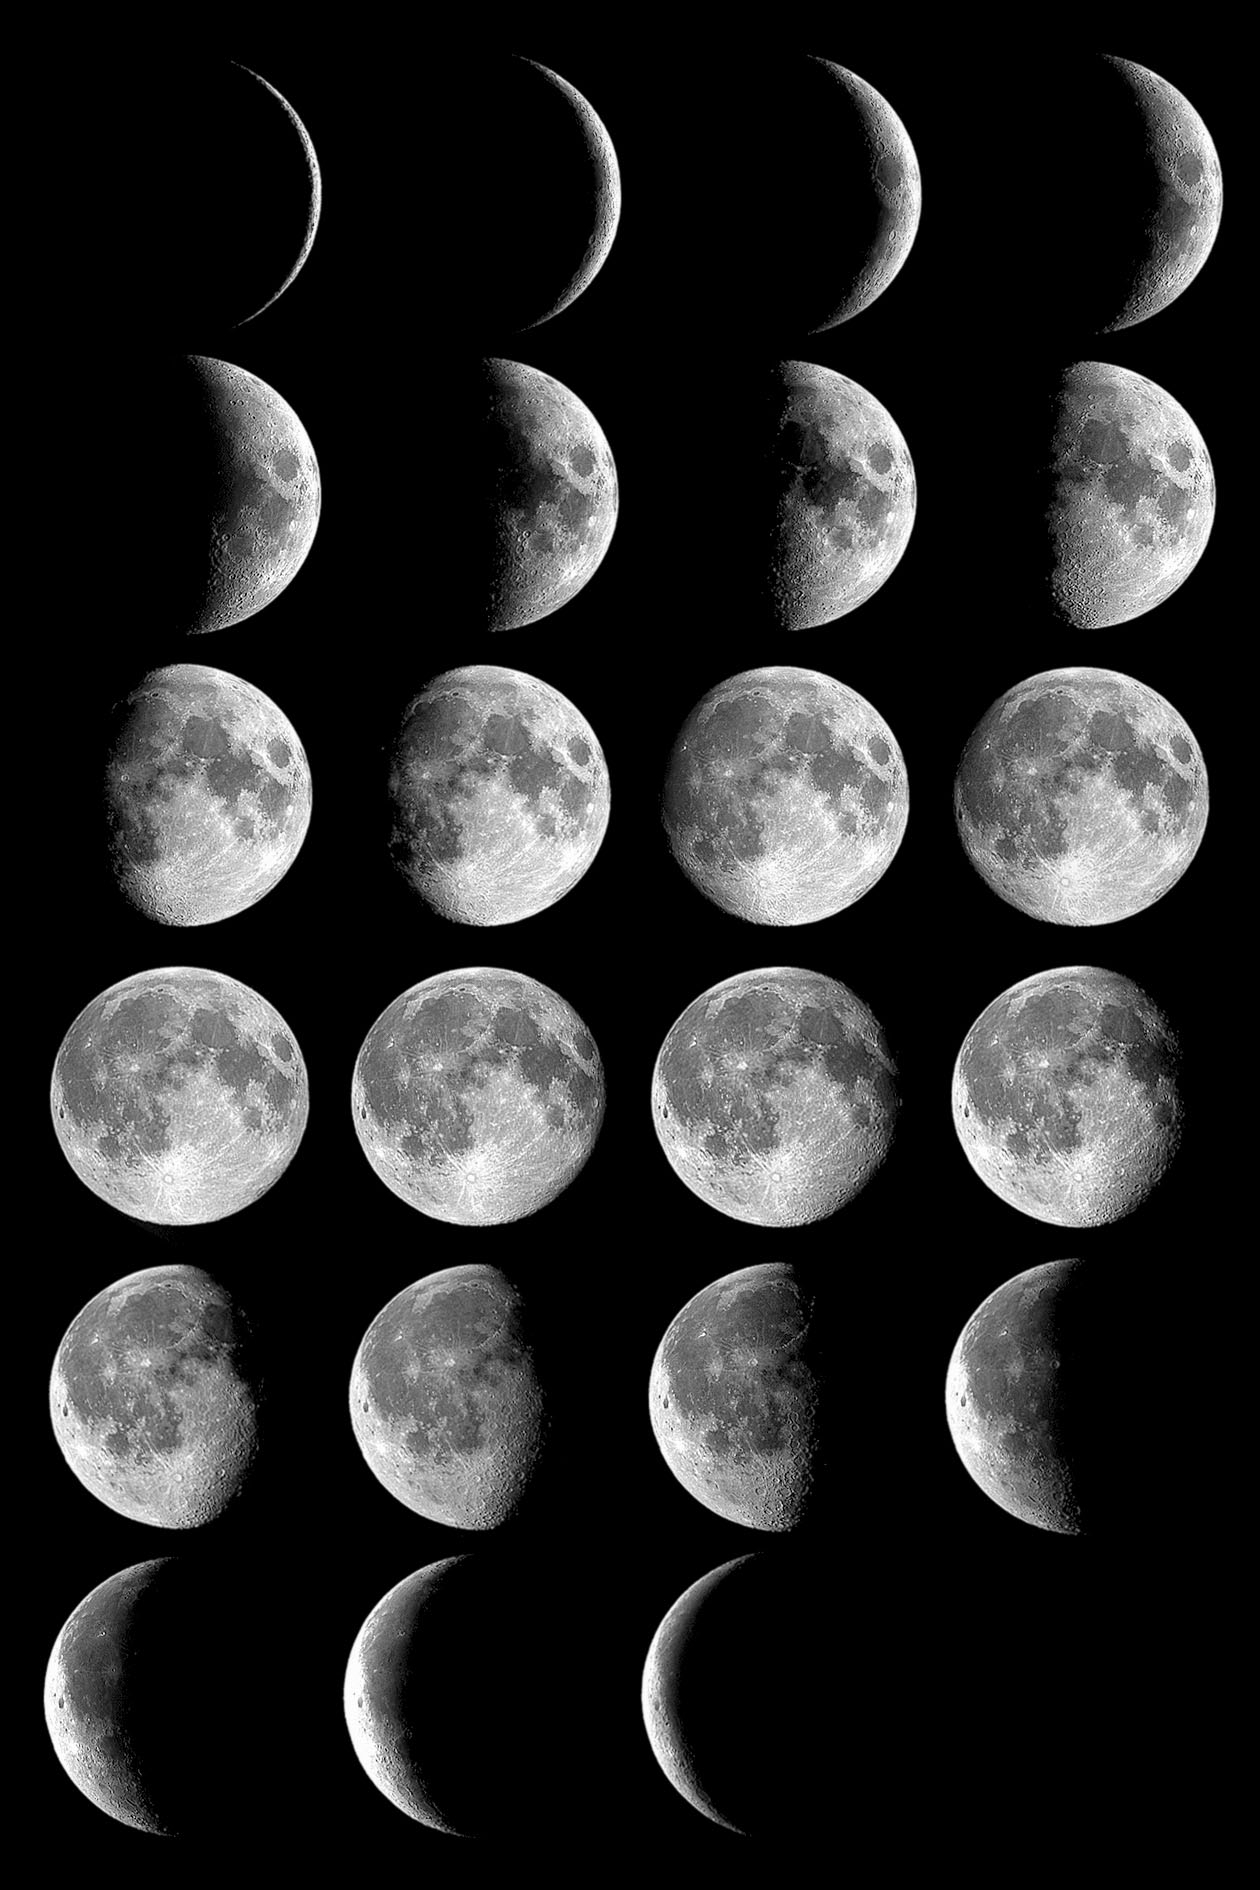 Phases Of The Moon And Percent Of The Moon Illuminated intended for Early Civilization Calendar Based On Moon Phases